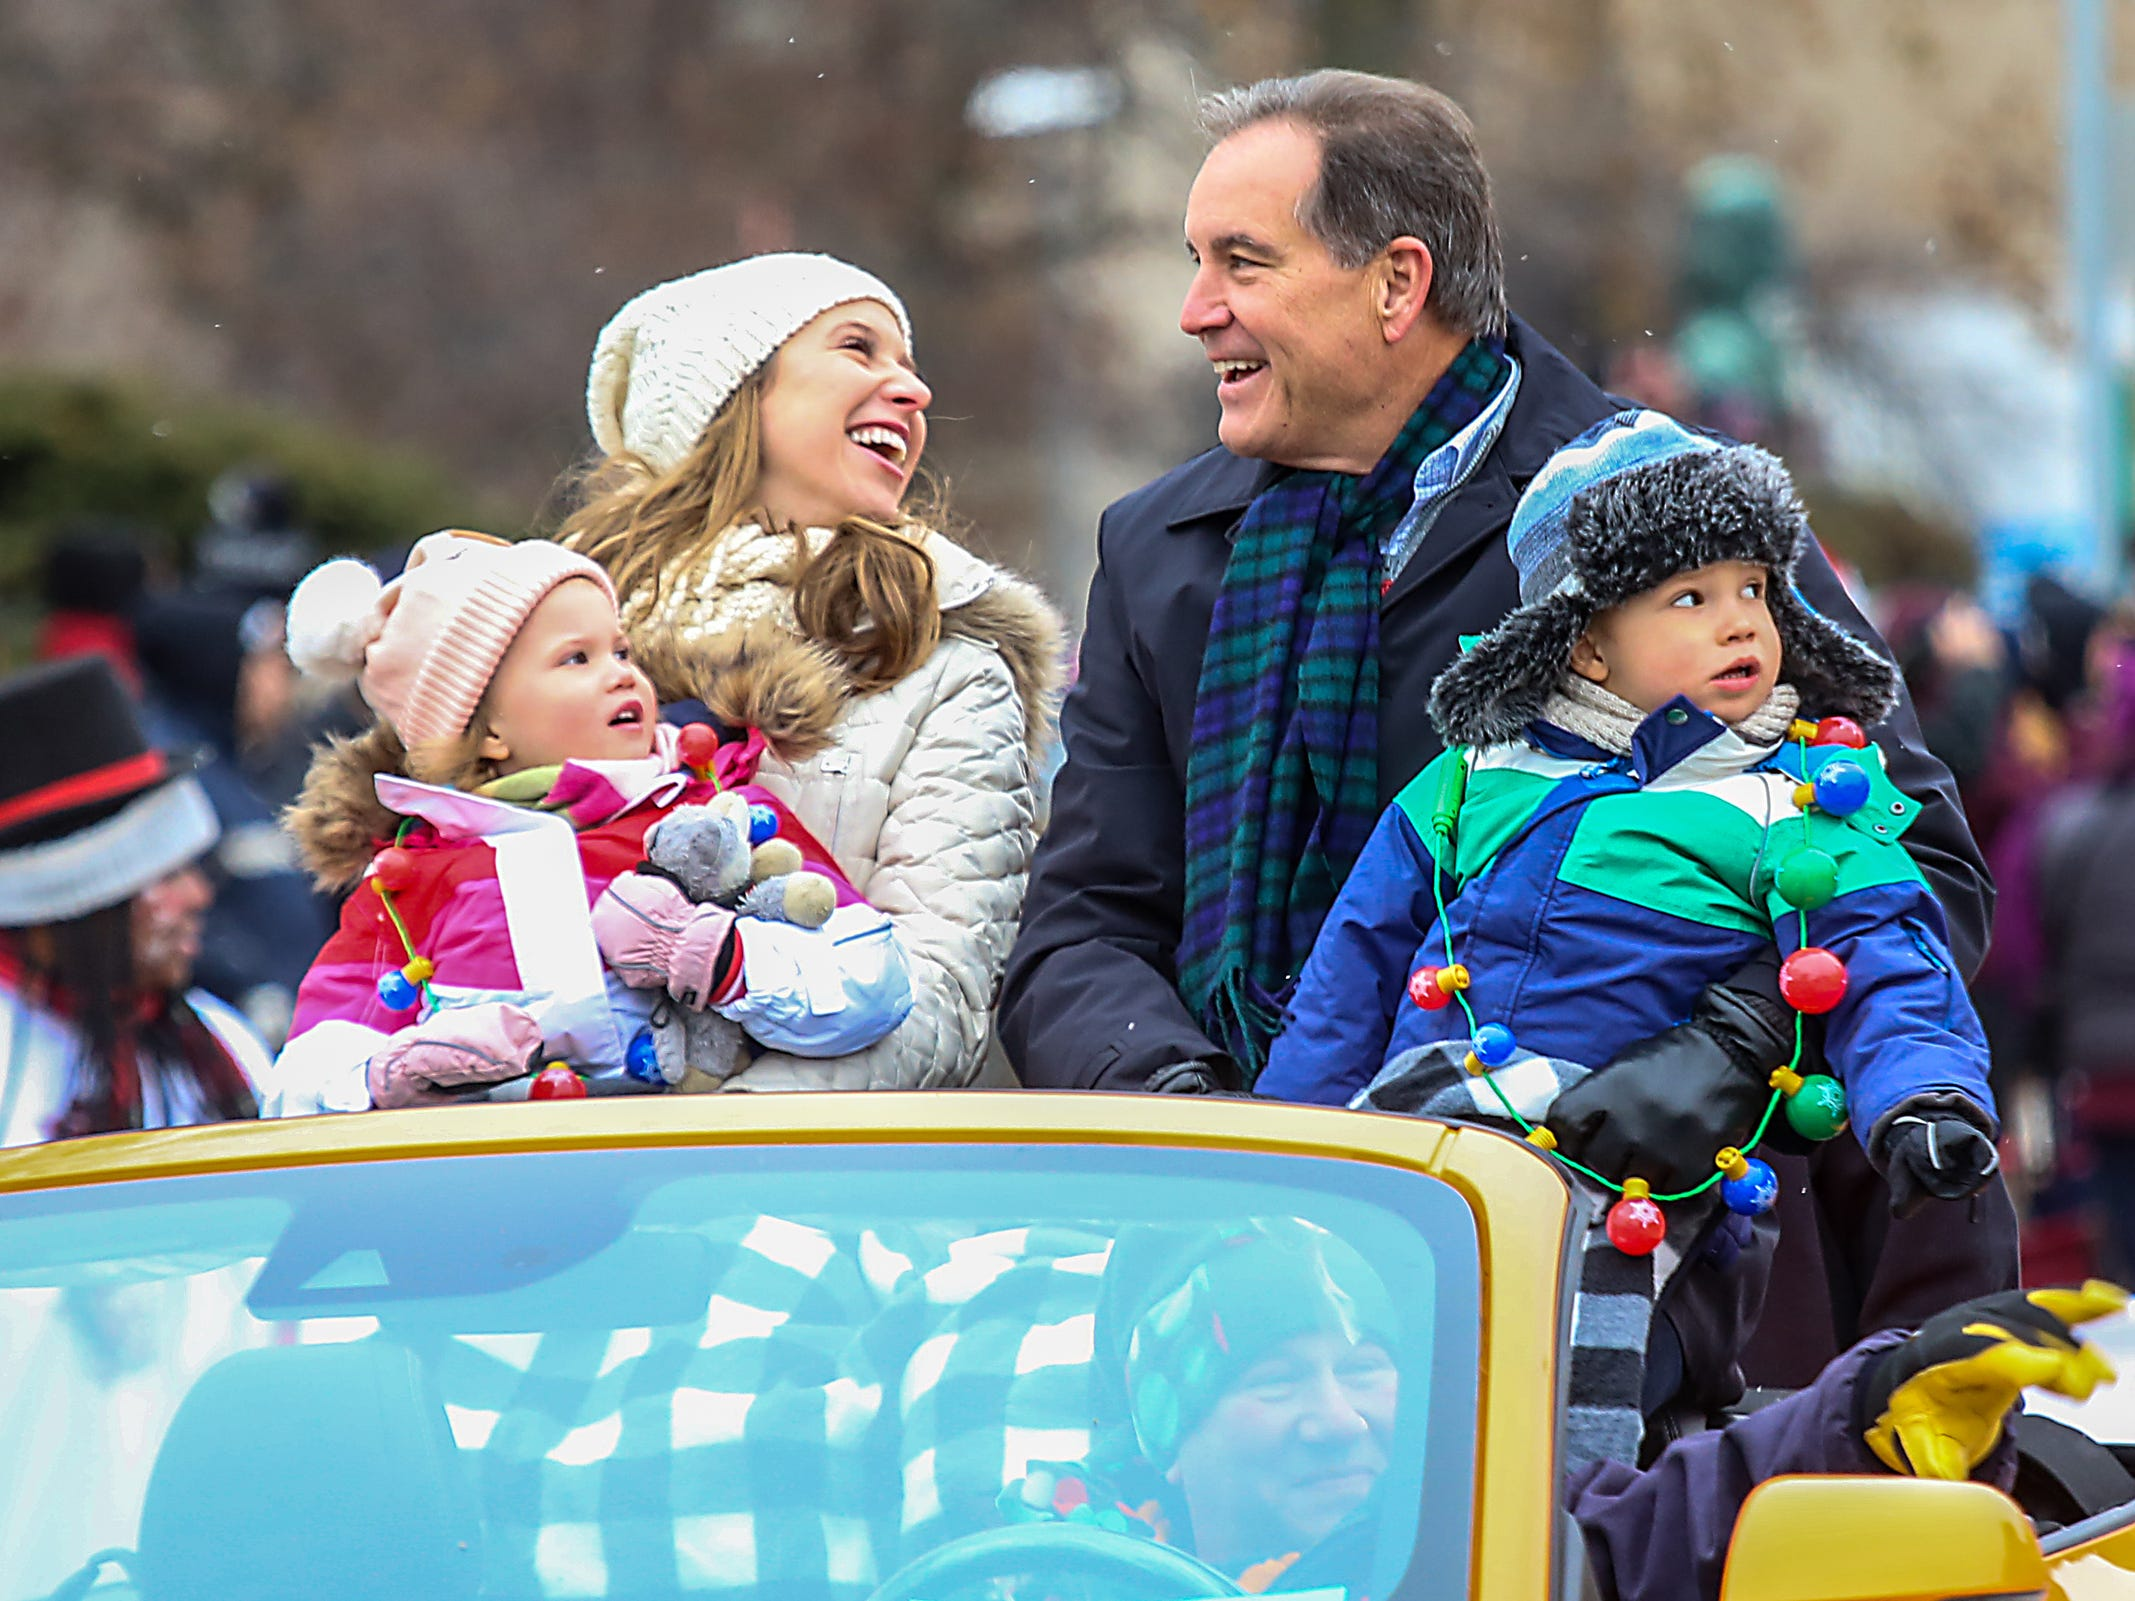 Grand Marshal Jim Nantz, sportscaster, waves to the crowd with his family, during America's Thanksgiving Parade in Detroit on Thursday, Nov. 22, 2018.